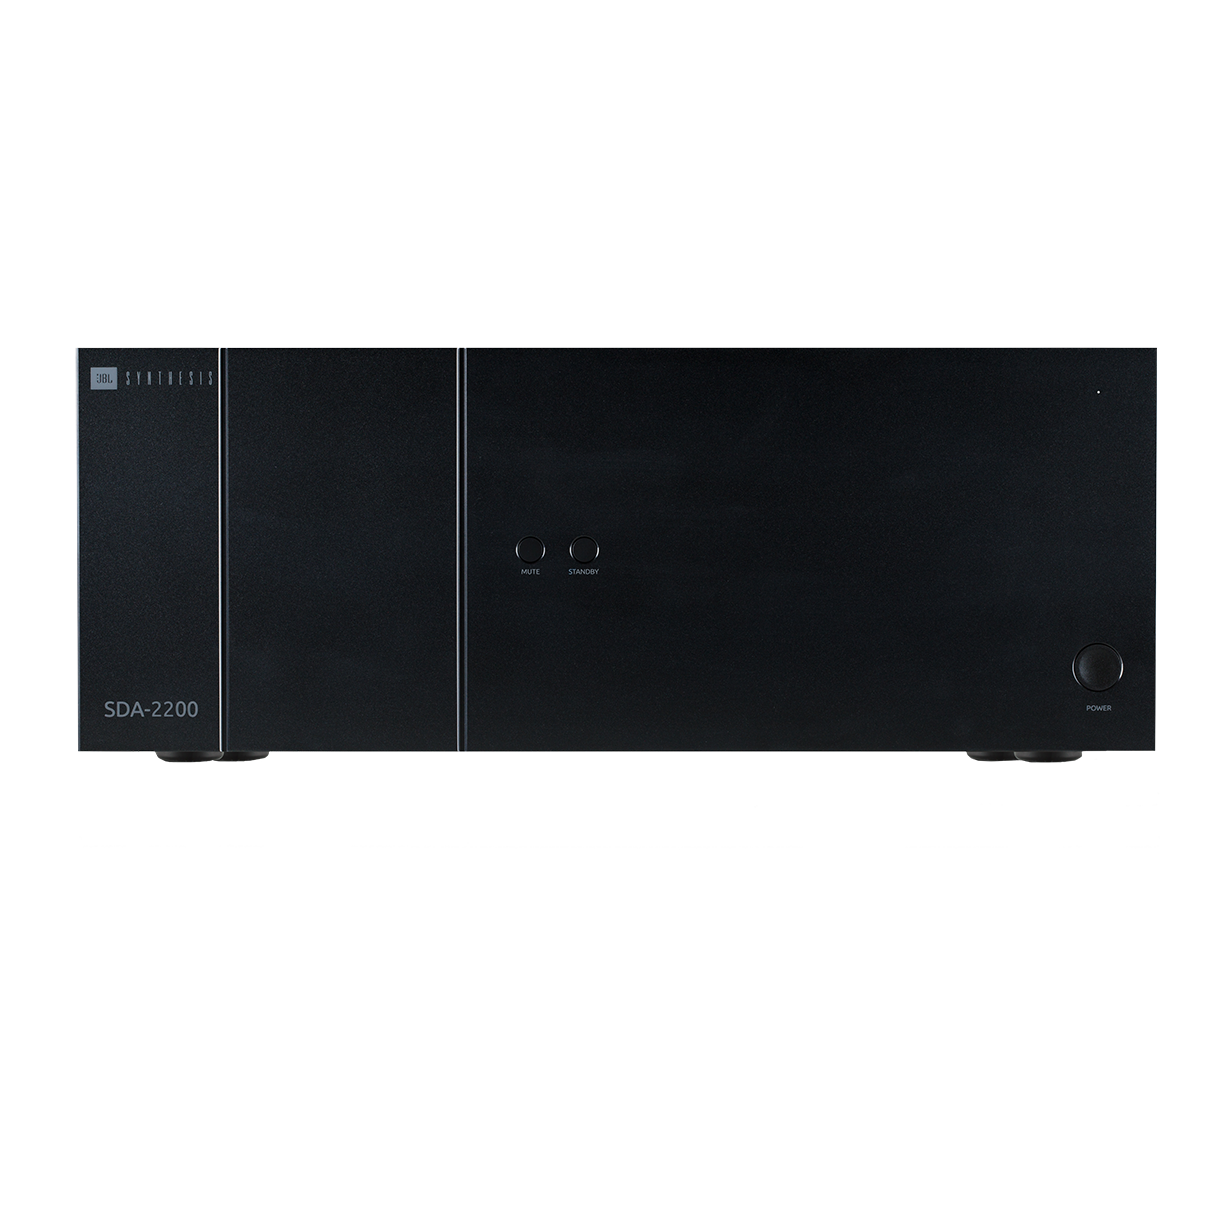 SDA-2200 - Black - Class G Two Channel Amplifier With Dante - Hero